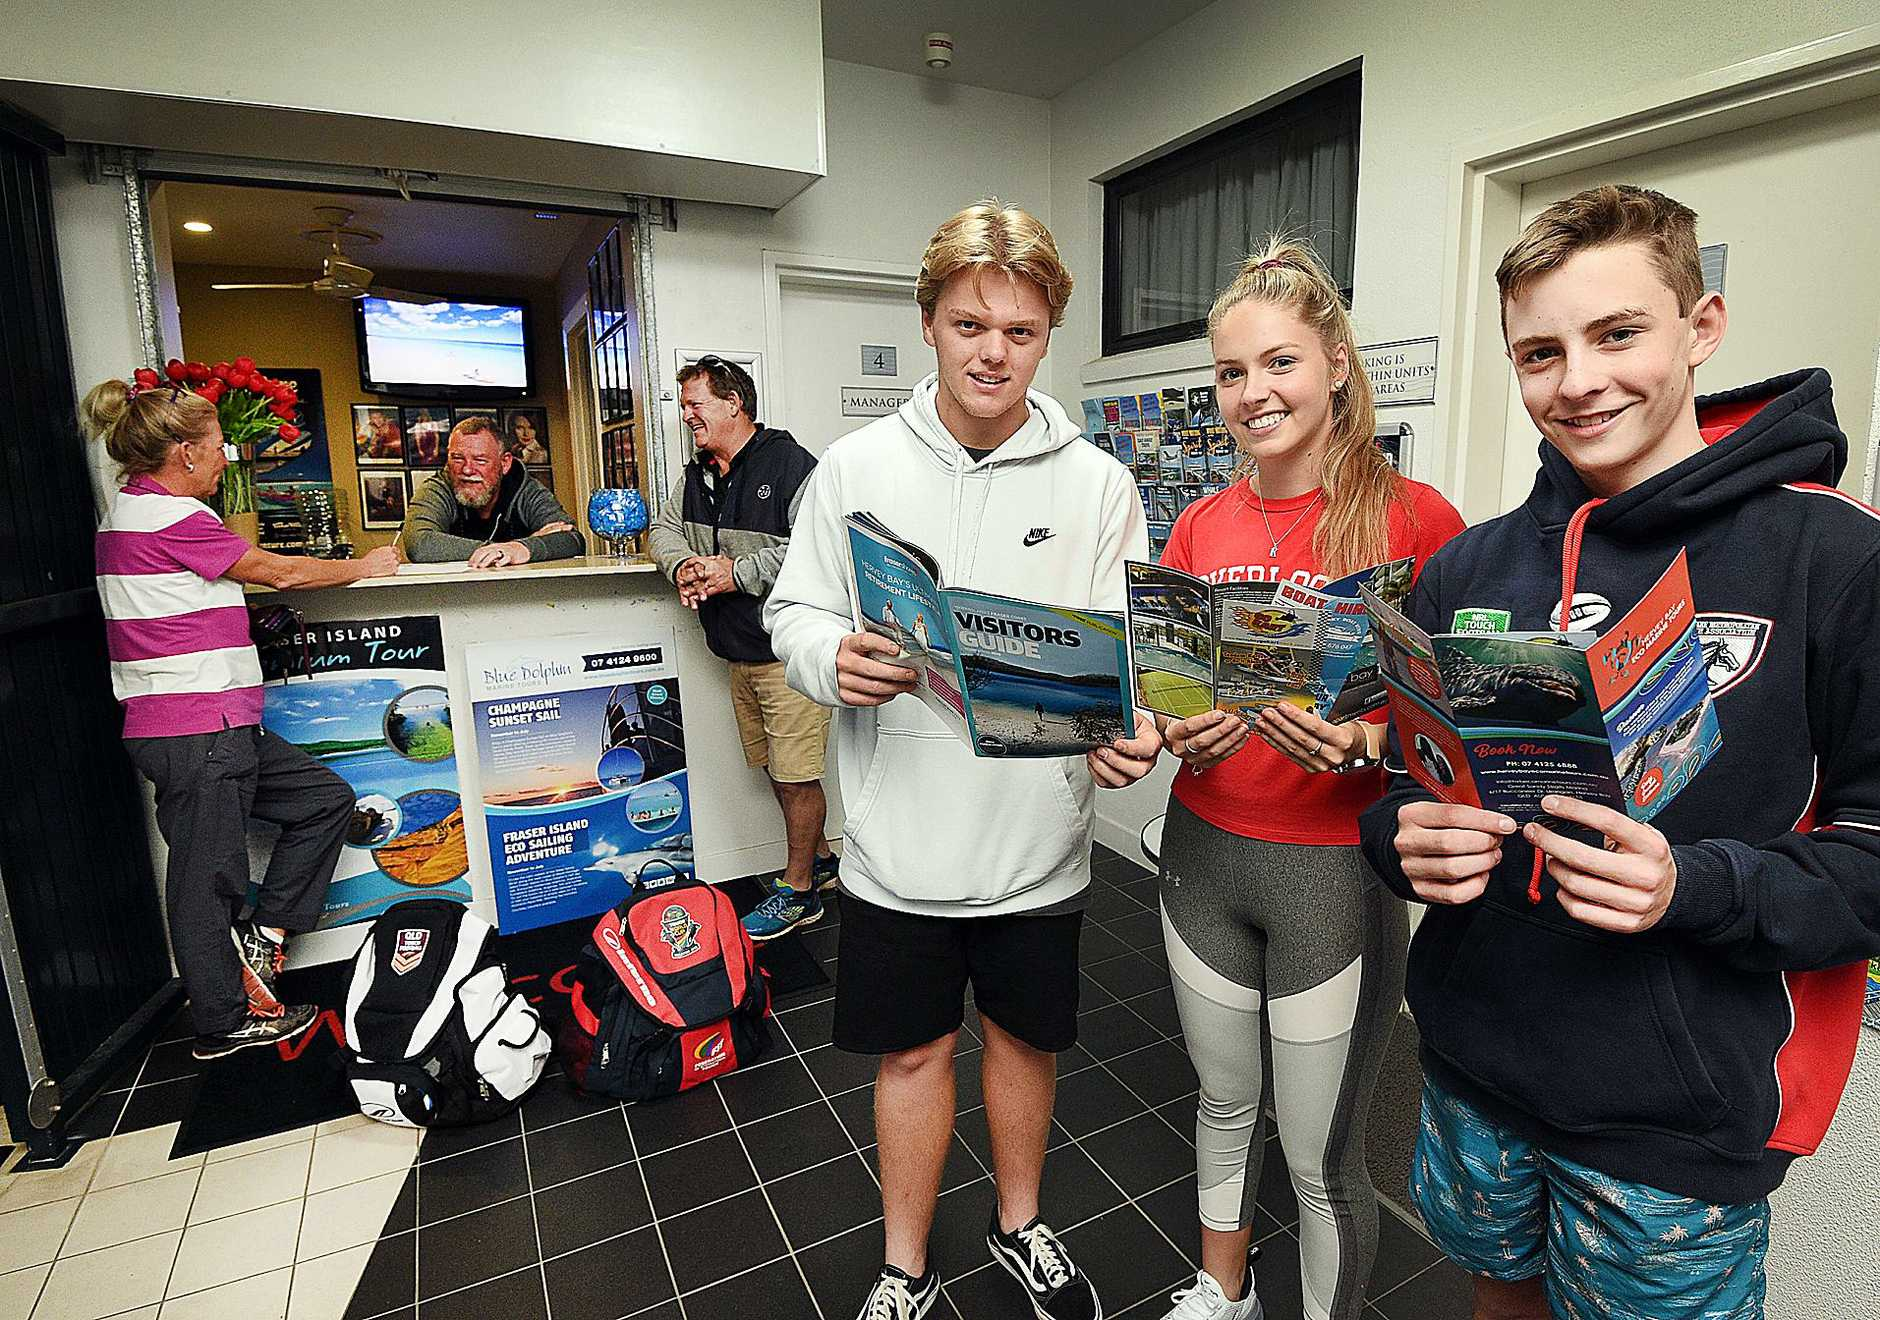 FOOTY FAMILIES FLOOD IN: Lorelle and Jim Sankey from Dalby check in with Bay Apartments owner Derek Foulston as players (from left) Max Brady and Karla and Brock Sankey take a look at the local tourist attractions.